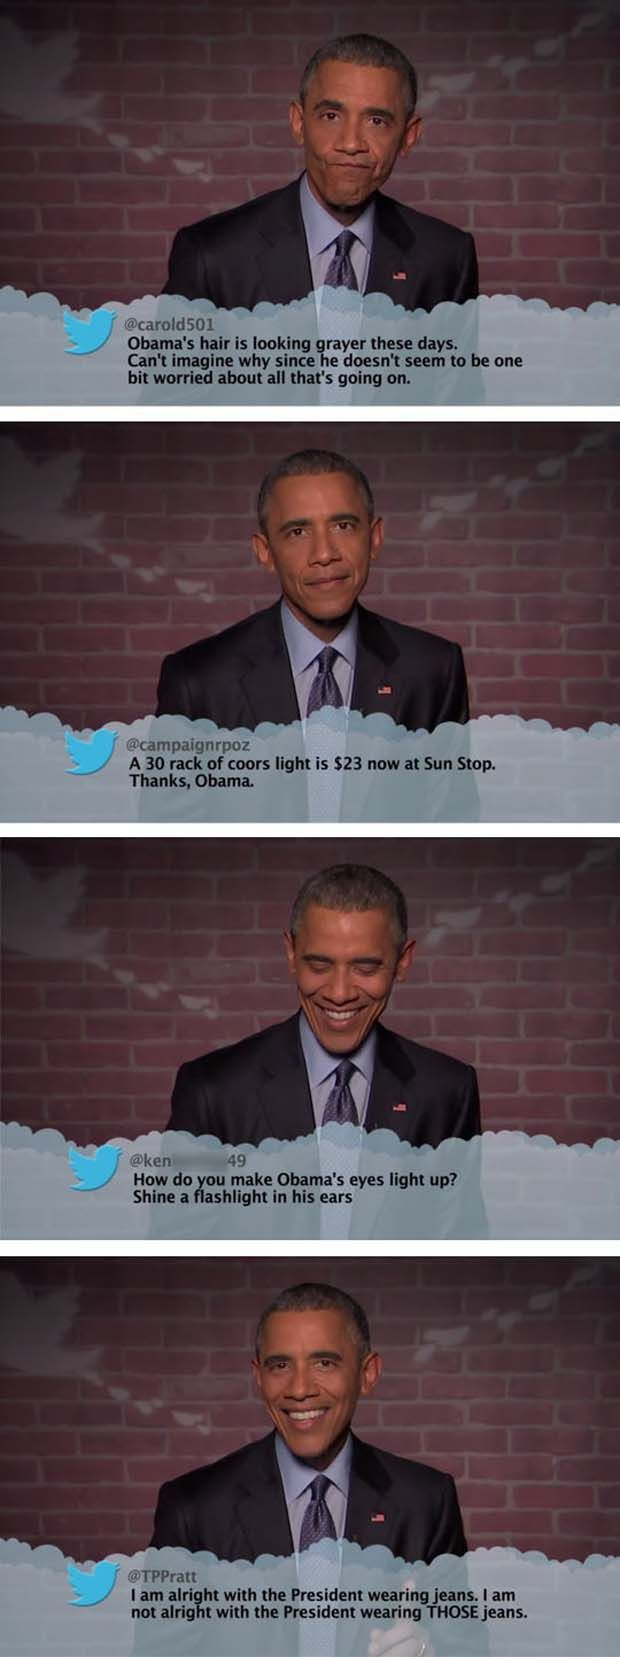 President Obama Reads Mean Tweets About Himself - 4 Pics: Obama Reads, Funny Pictures, Obama Humor, U.S. Presidents, Adorable Funny Stuffs, Obama Tweets, Mean Tweets Funny, President Obama, Celebrity Mean Tweets